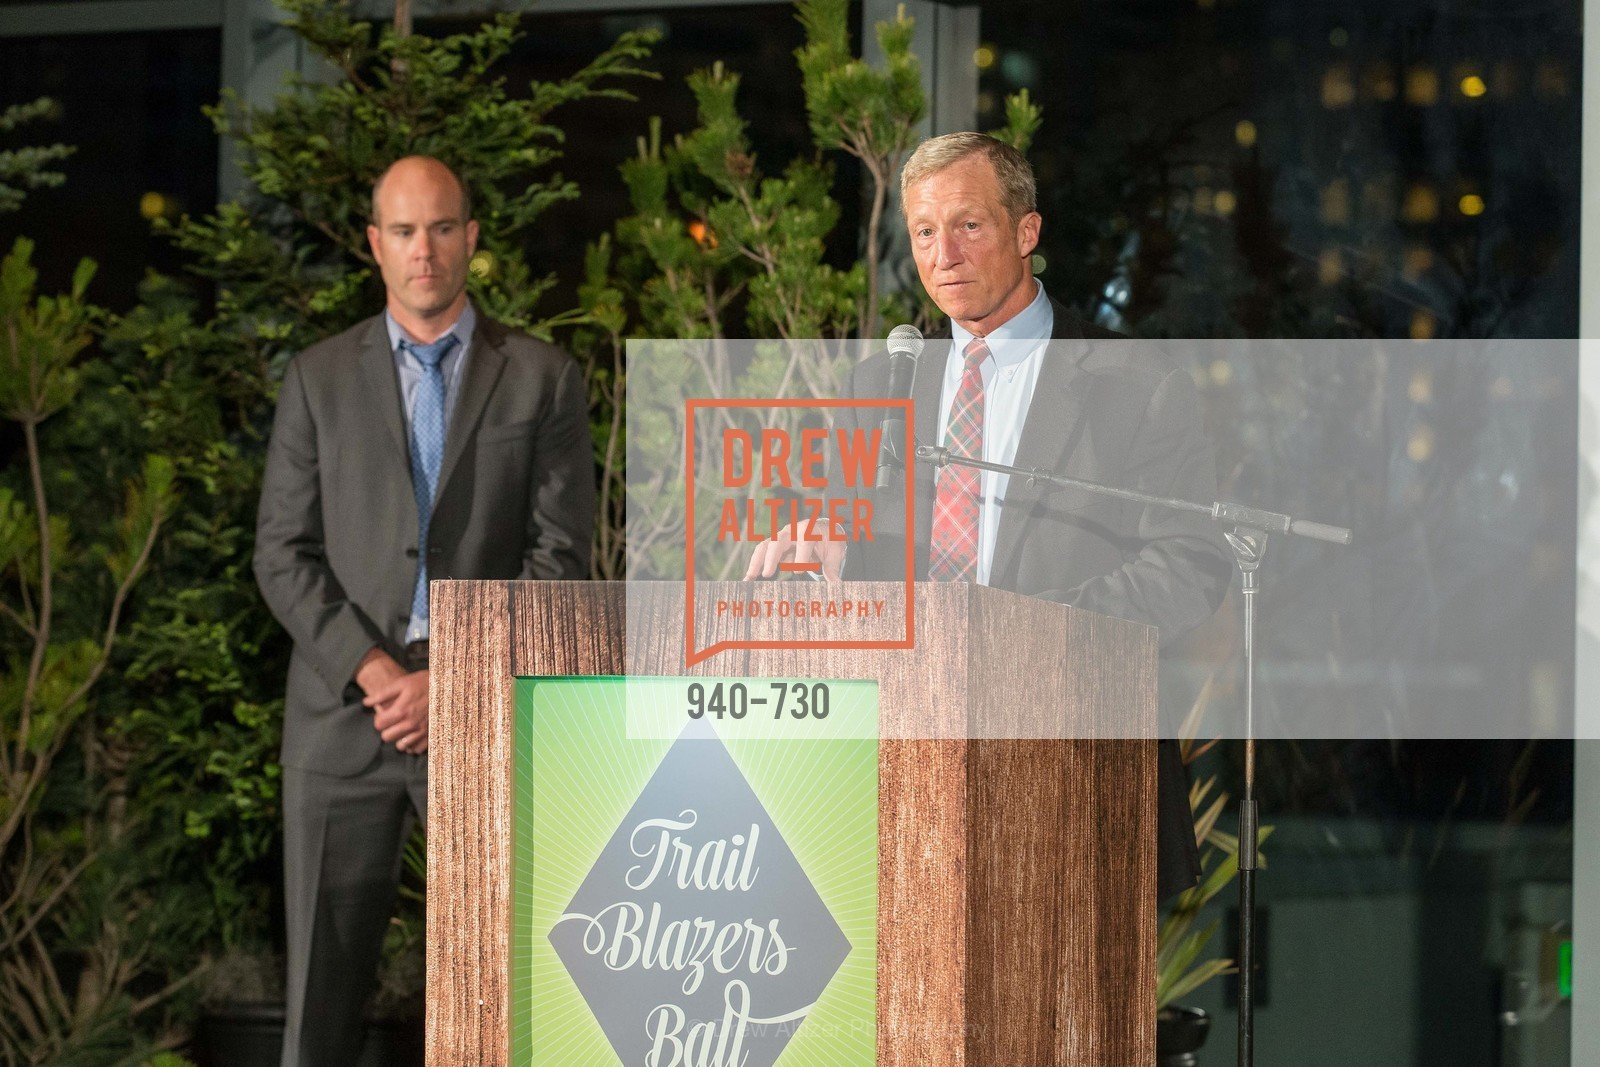 Michael Brune, Tom Steyer, 2015 SIERRA CLUB Trail Blazers Ball, US, May 14th, 2015,Drew Altizer, Drew Altizer Photography, full-service agency, private events, San Francisco photographer, photographer california